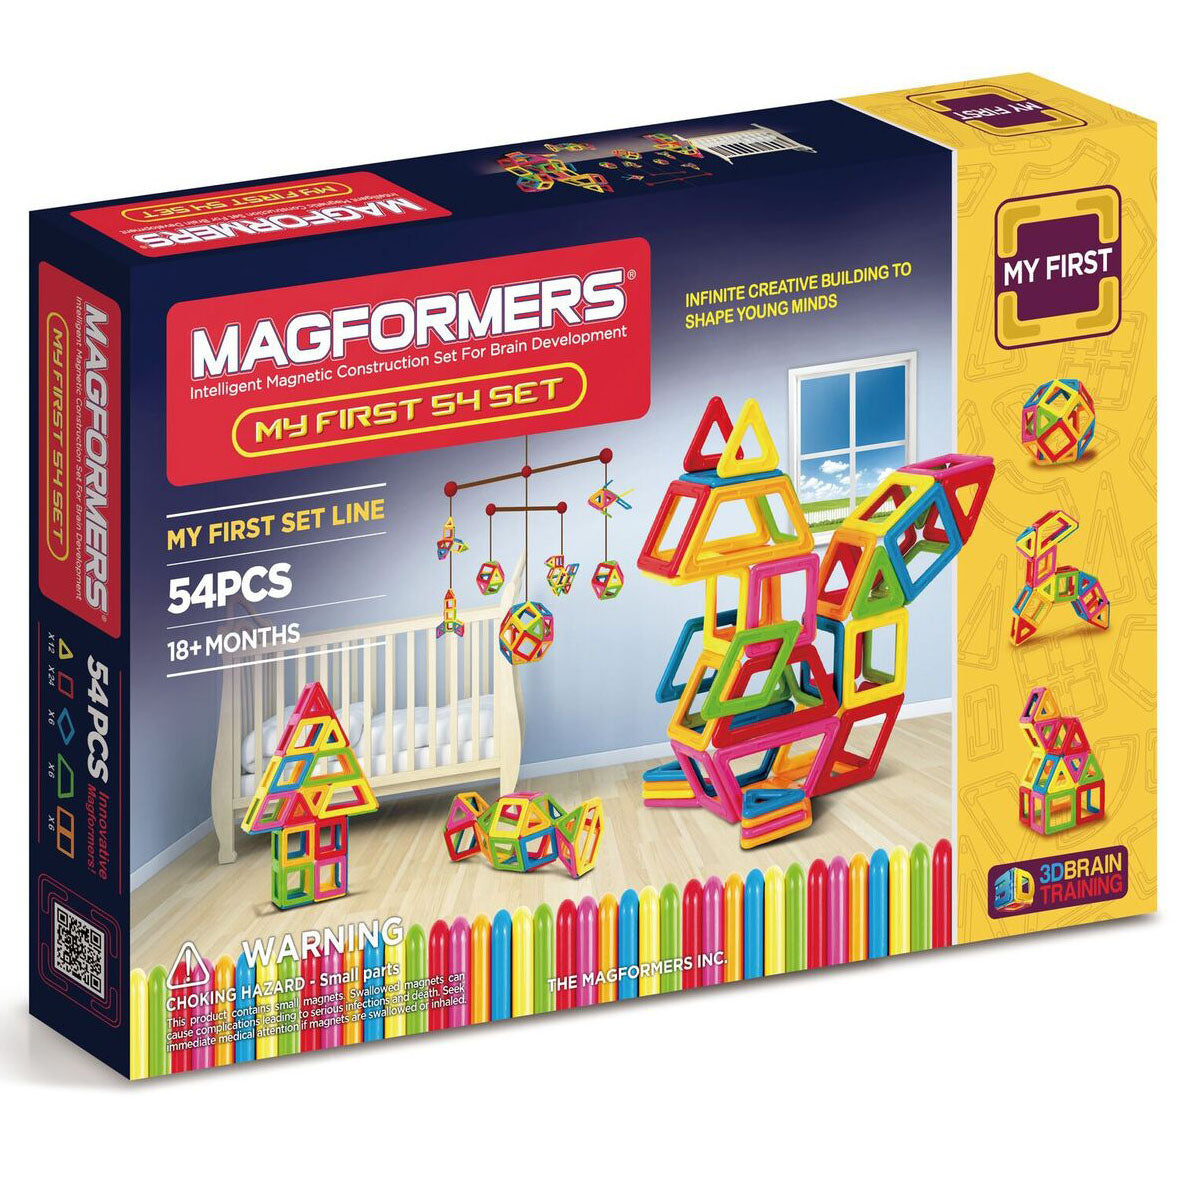 Magformers My First 54 - Magnetic Construction Set